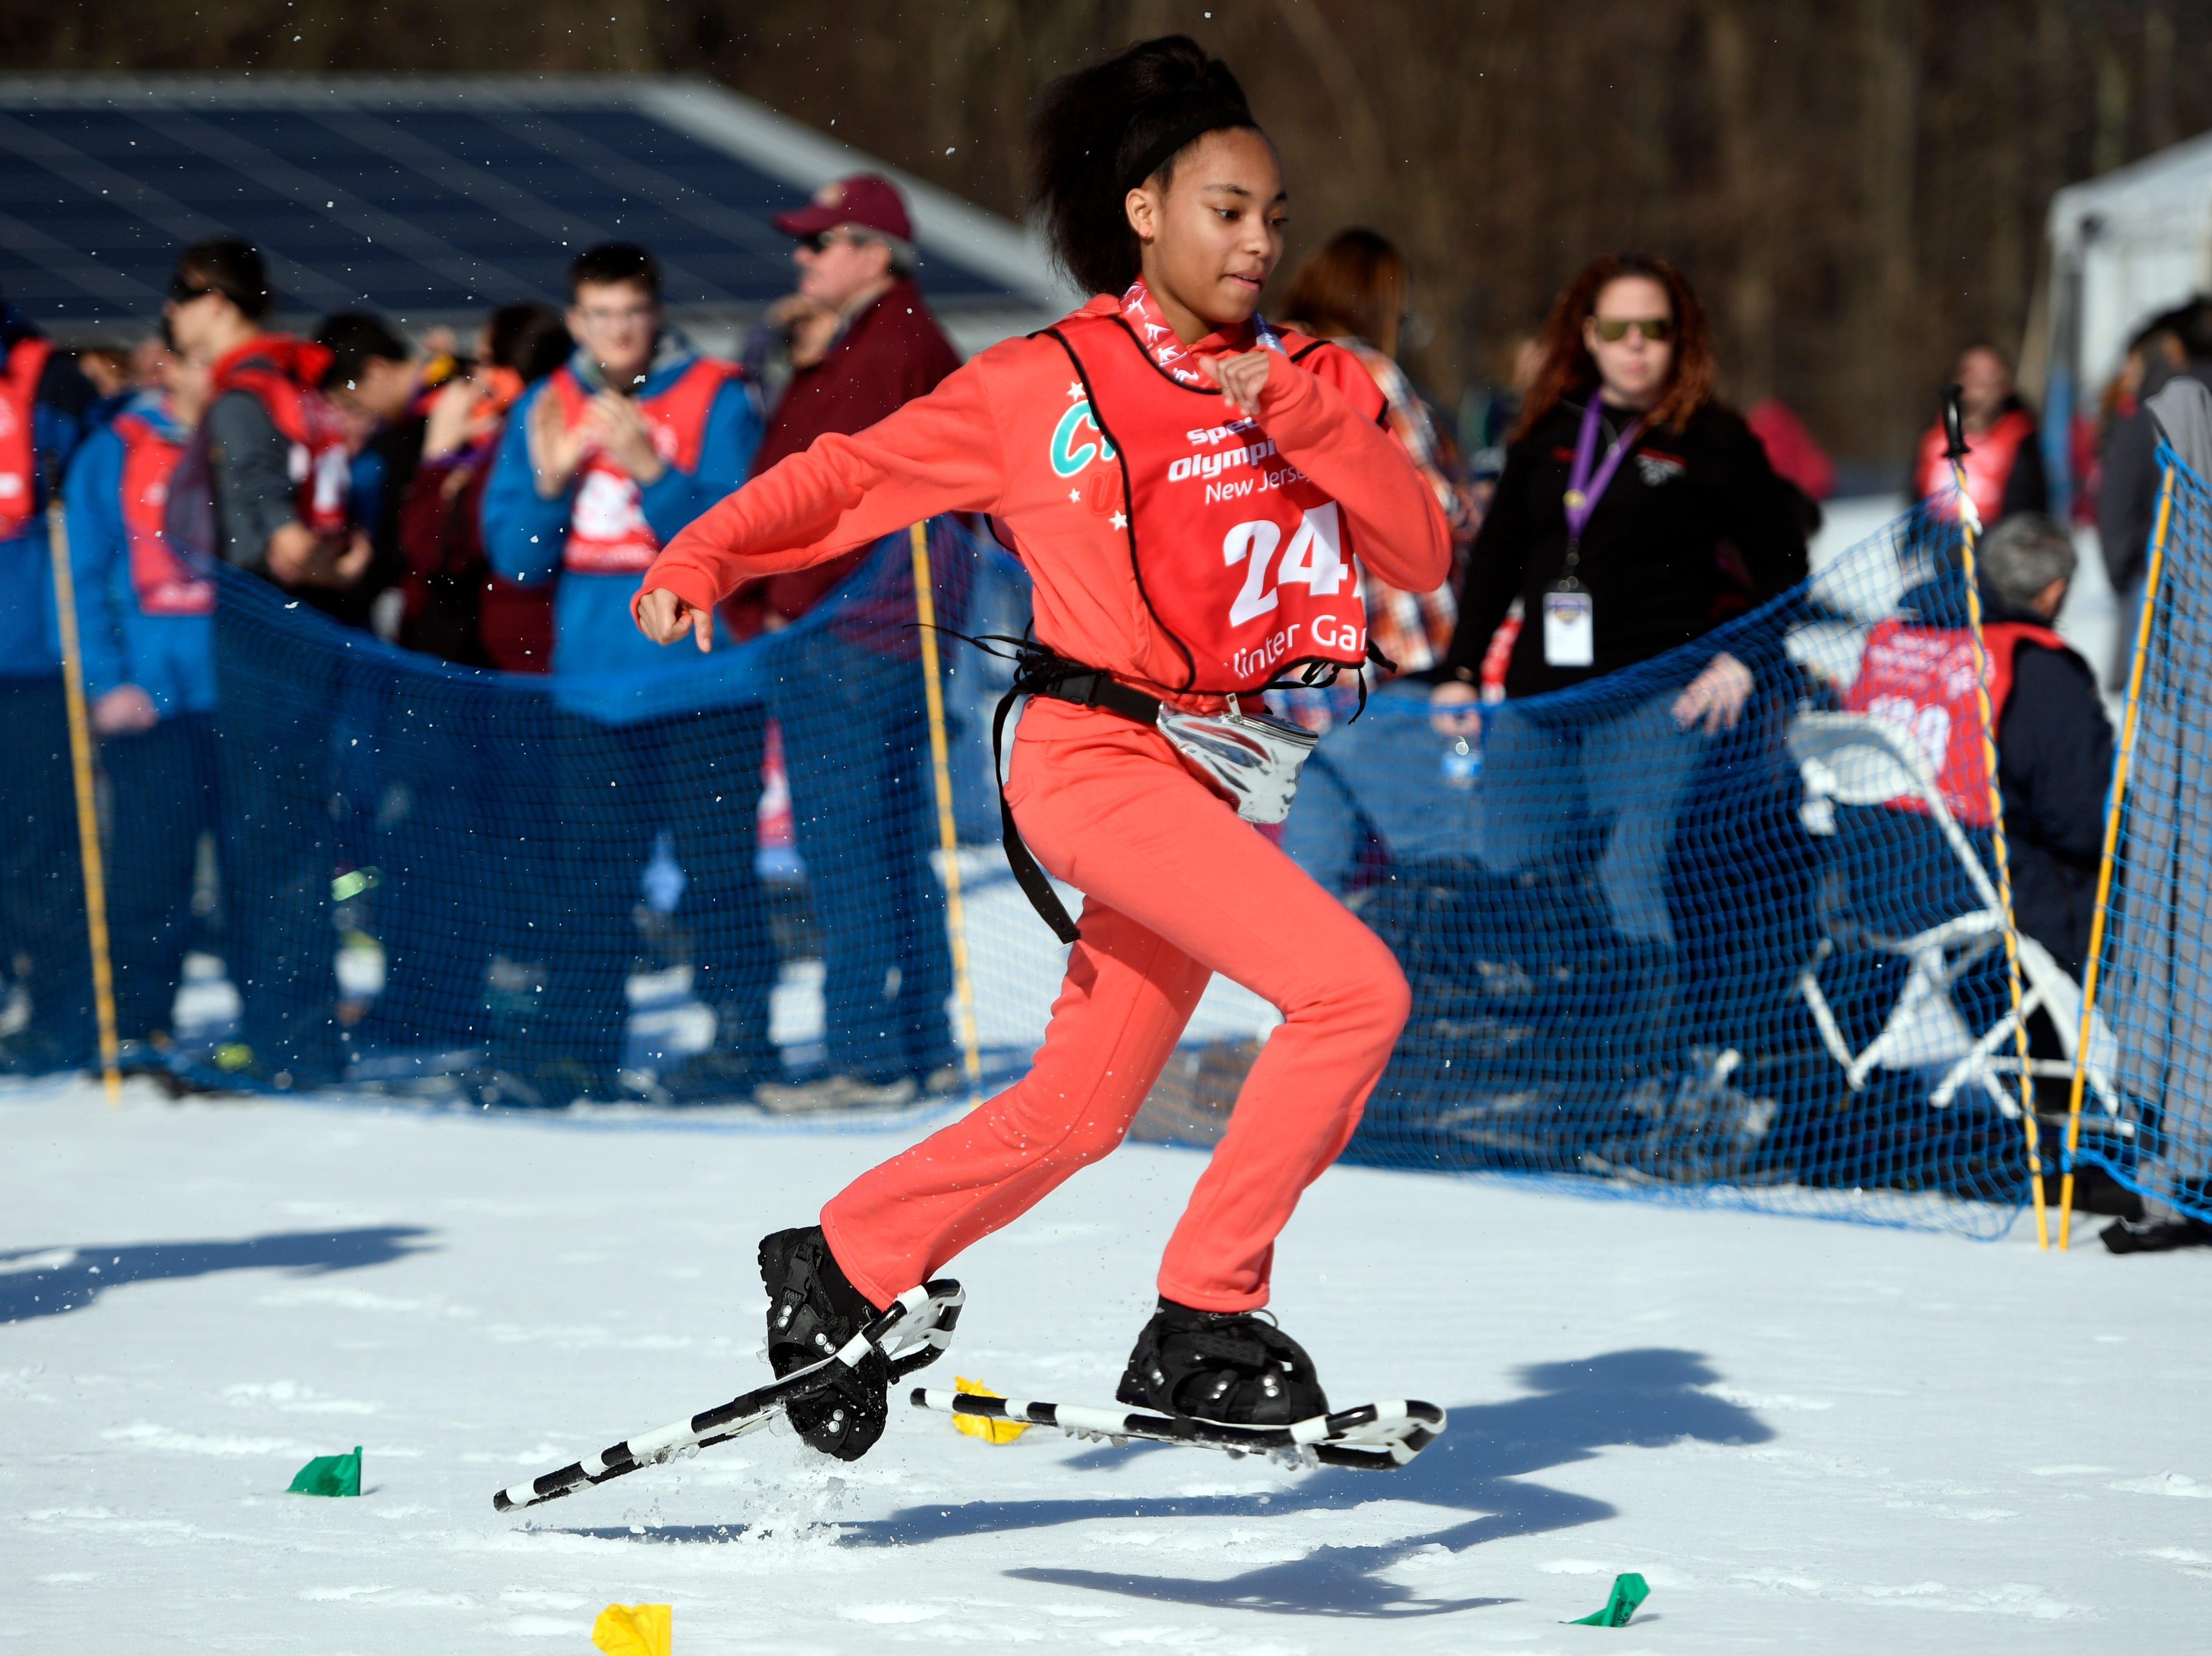 Taniyah Brooks of Newark competes in the snowshoeing 200-meter during the Special Olympics New Jersey 2019 Winter Games on Tuesday, Feb. 5, 2019, in Vernon.